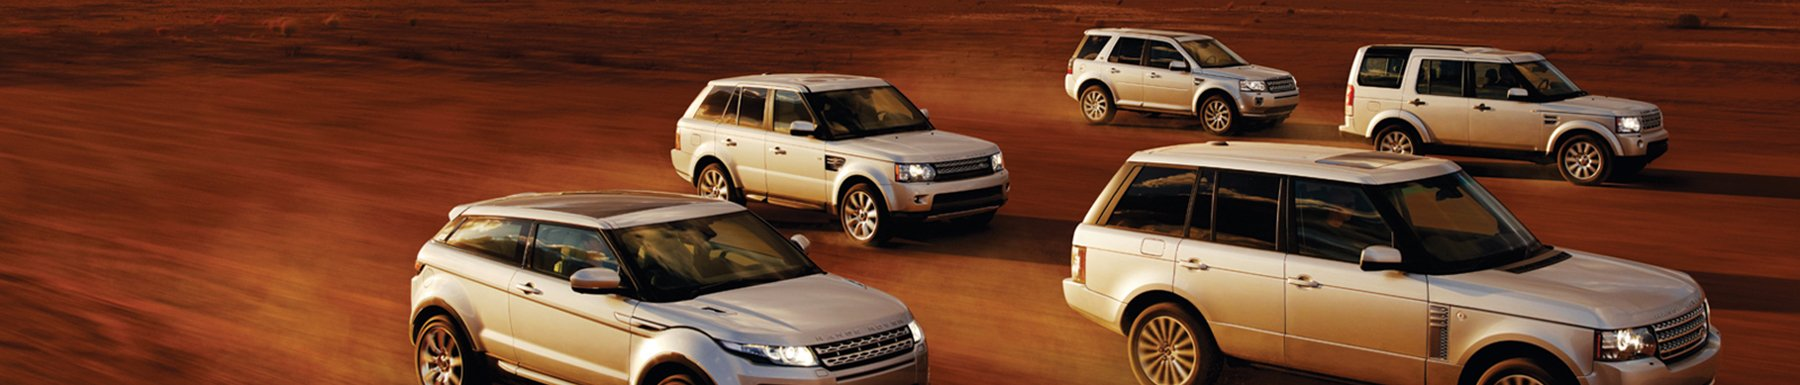 Land Rover Vehicles - Certified Pre-Owned Header Image